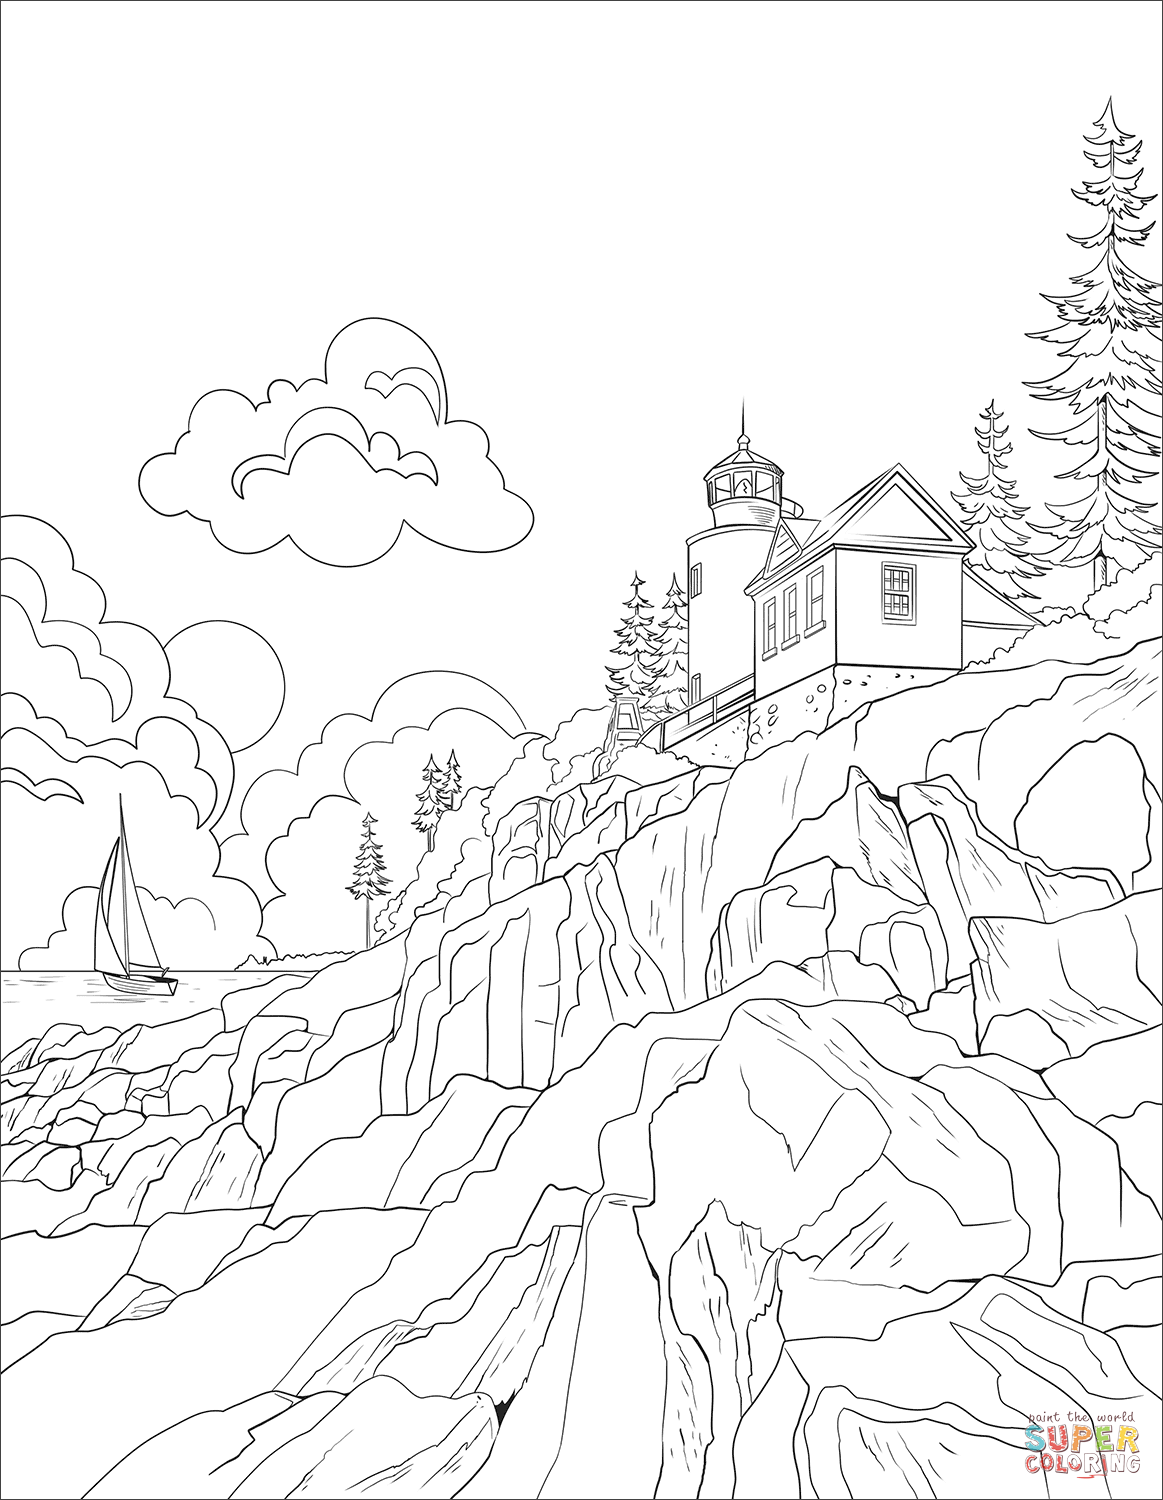 Acadia National Park Coloring Page